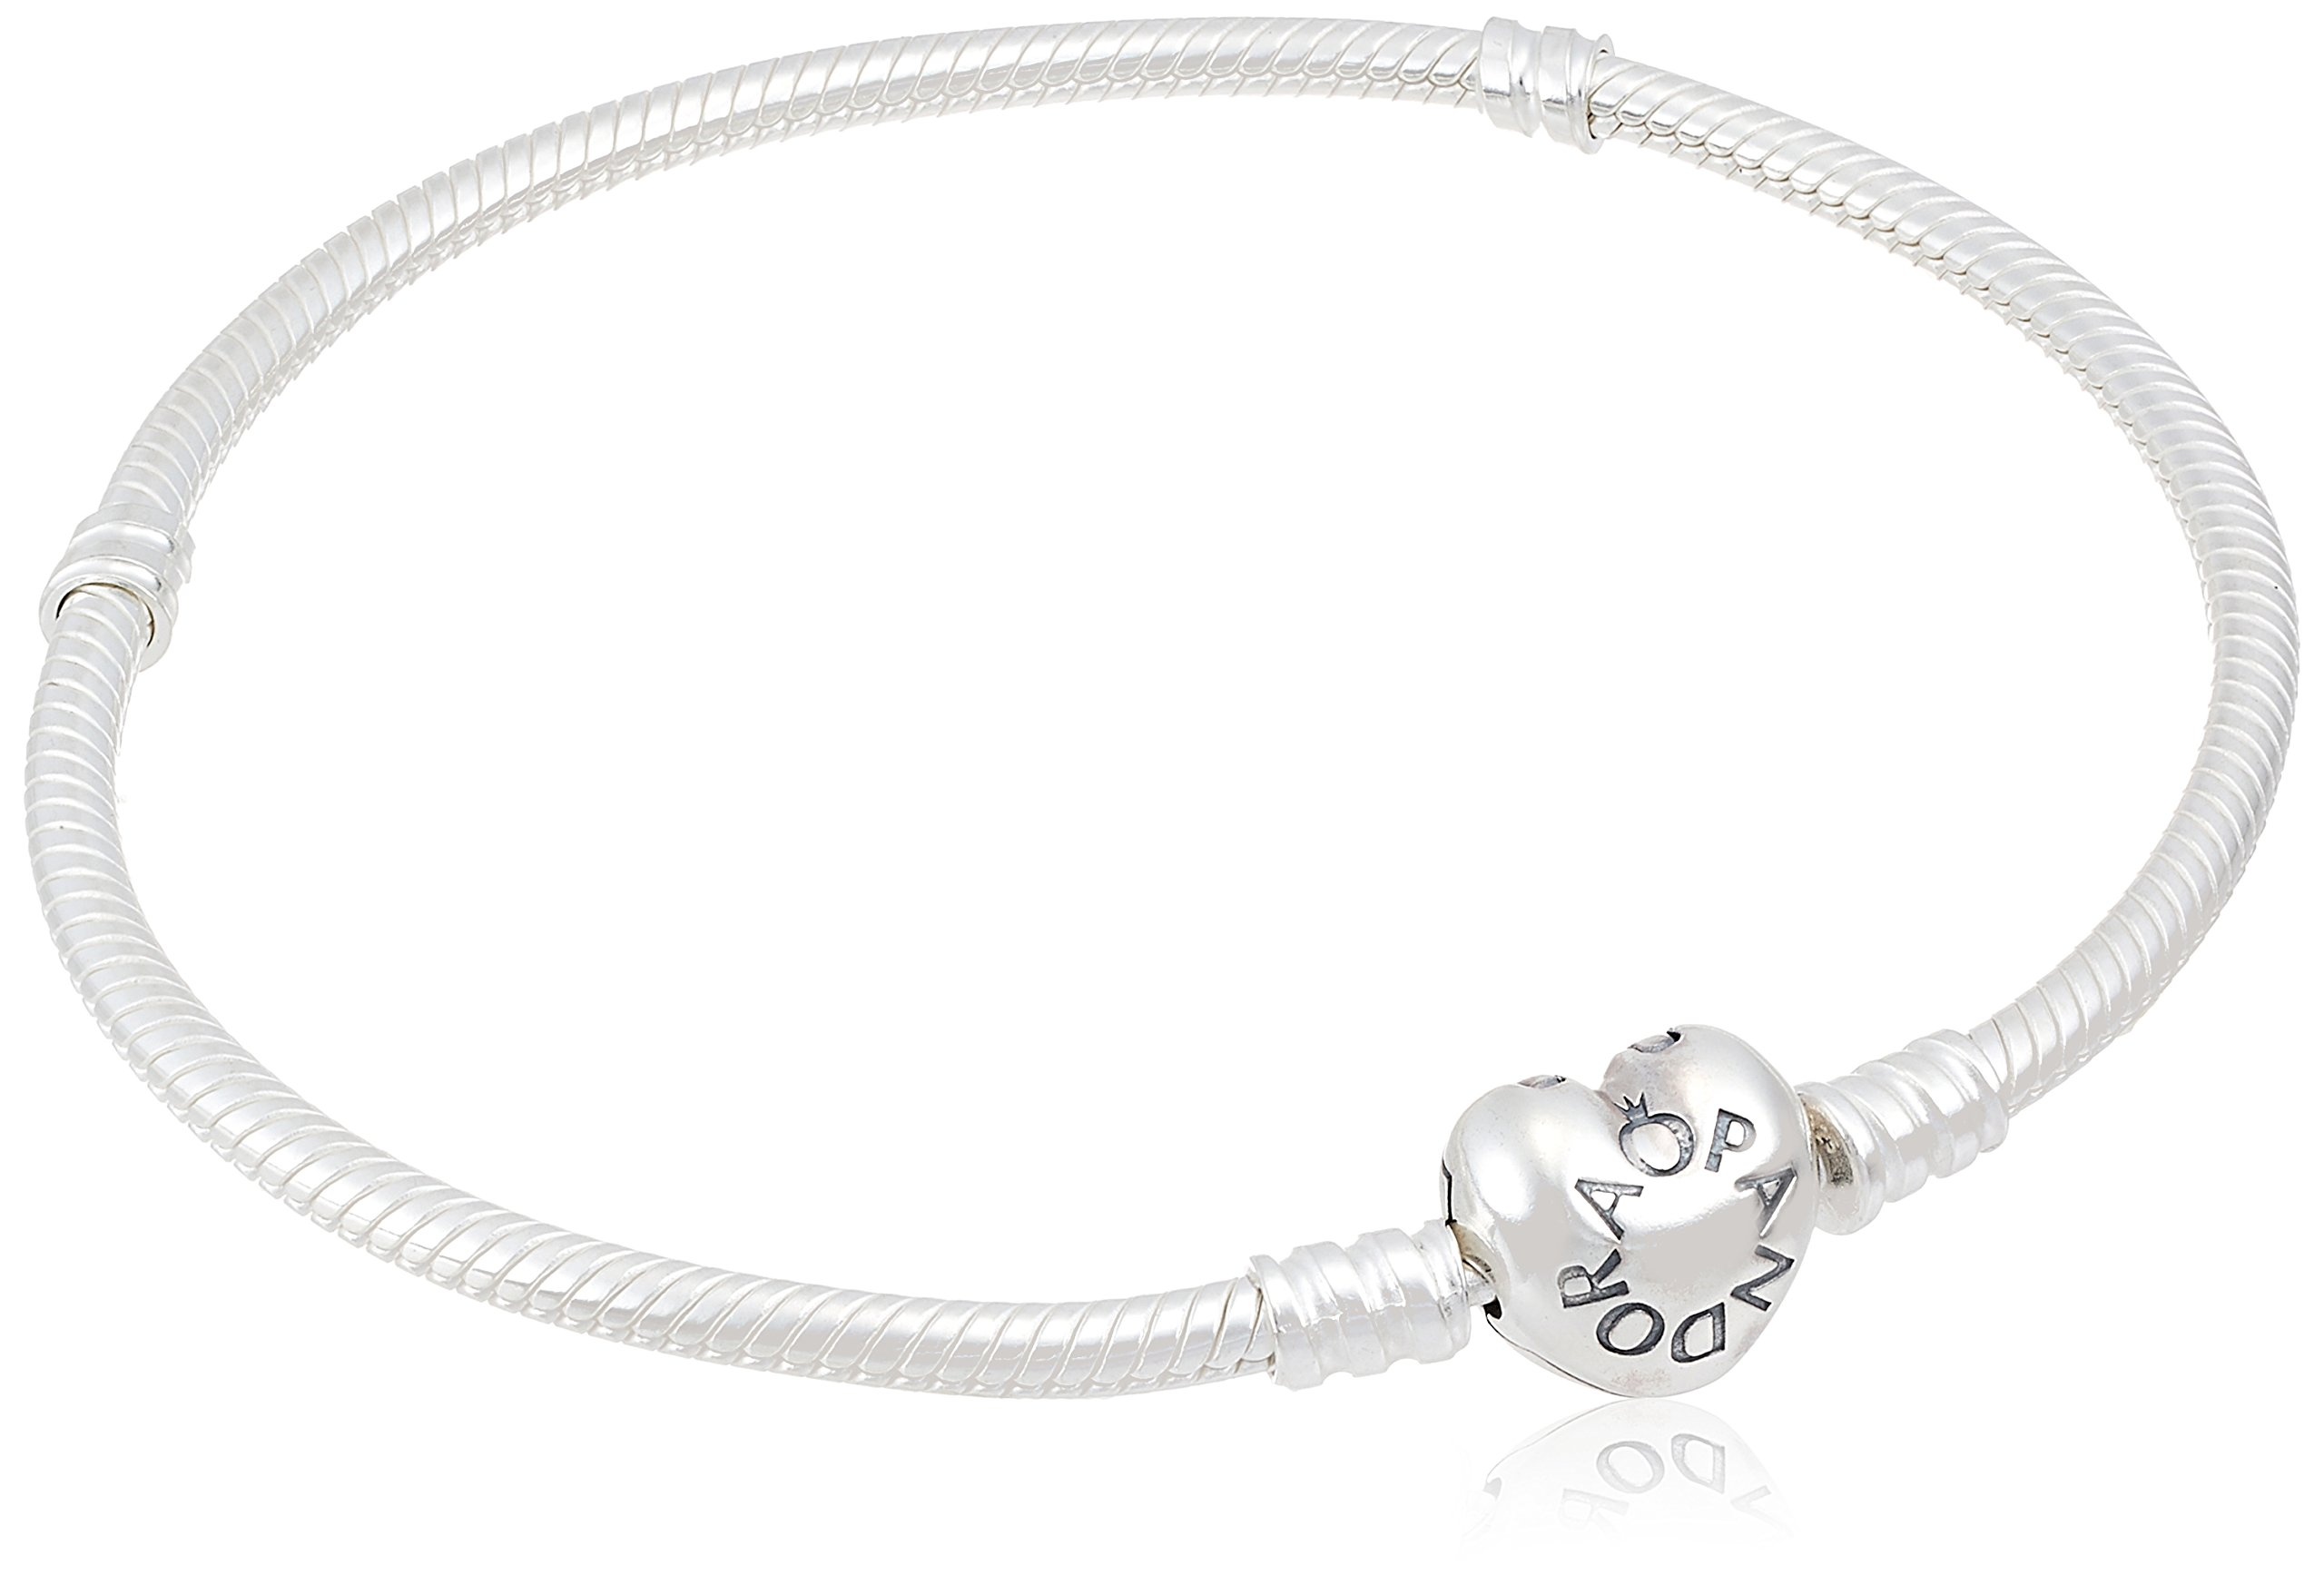 PANDORA-590719-Sterling-Silver-Heart-Clasp-Bracelet-Gift-Box-Included